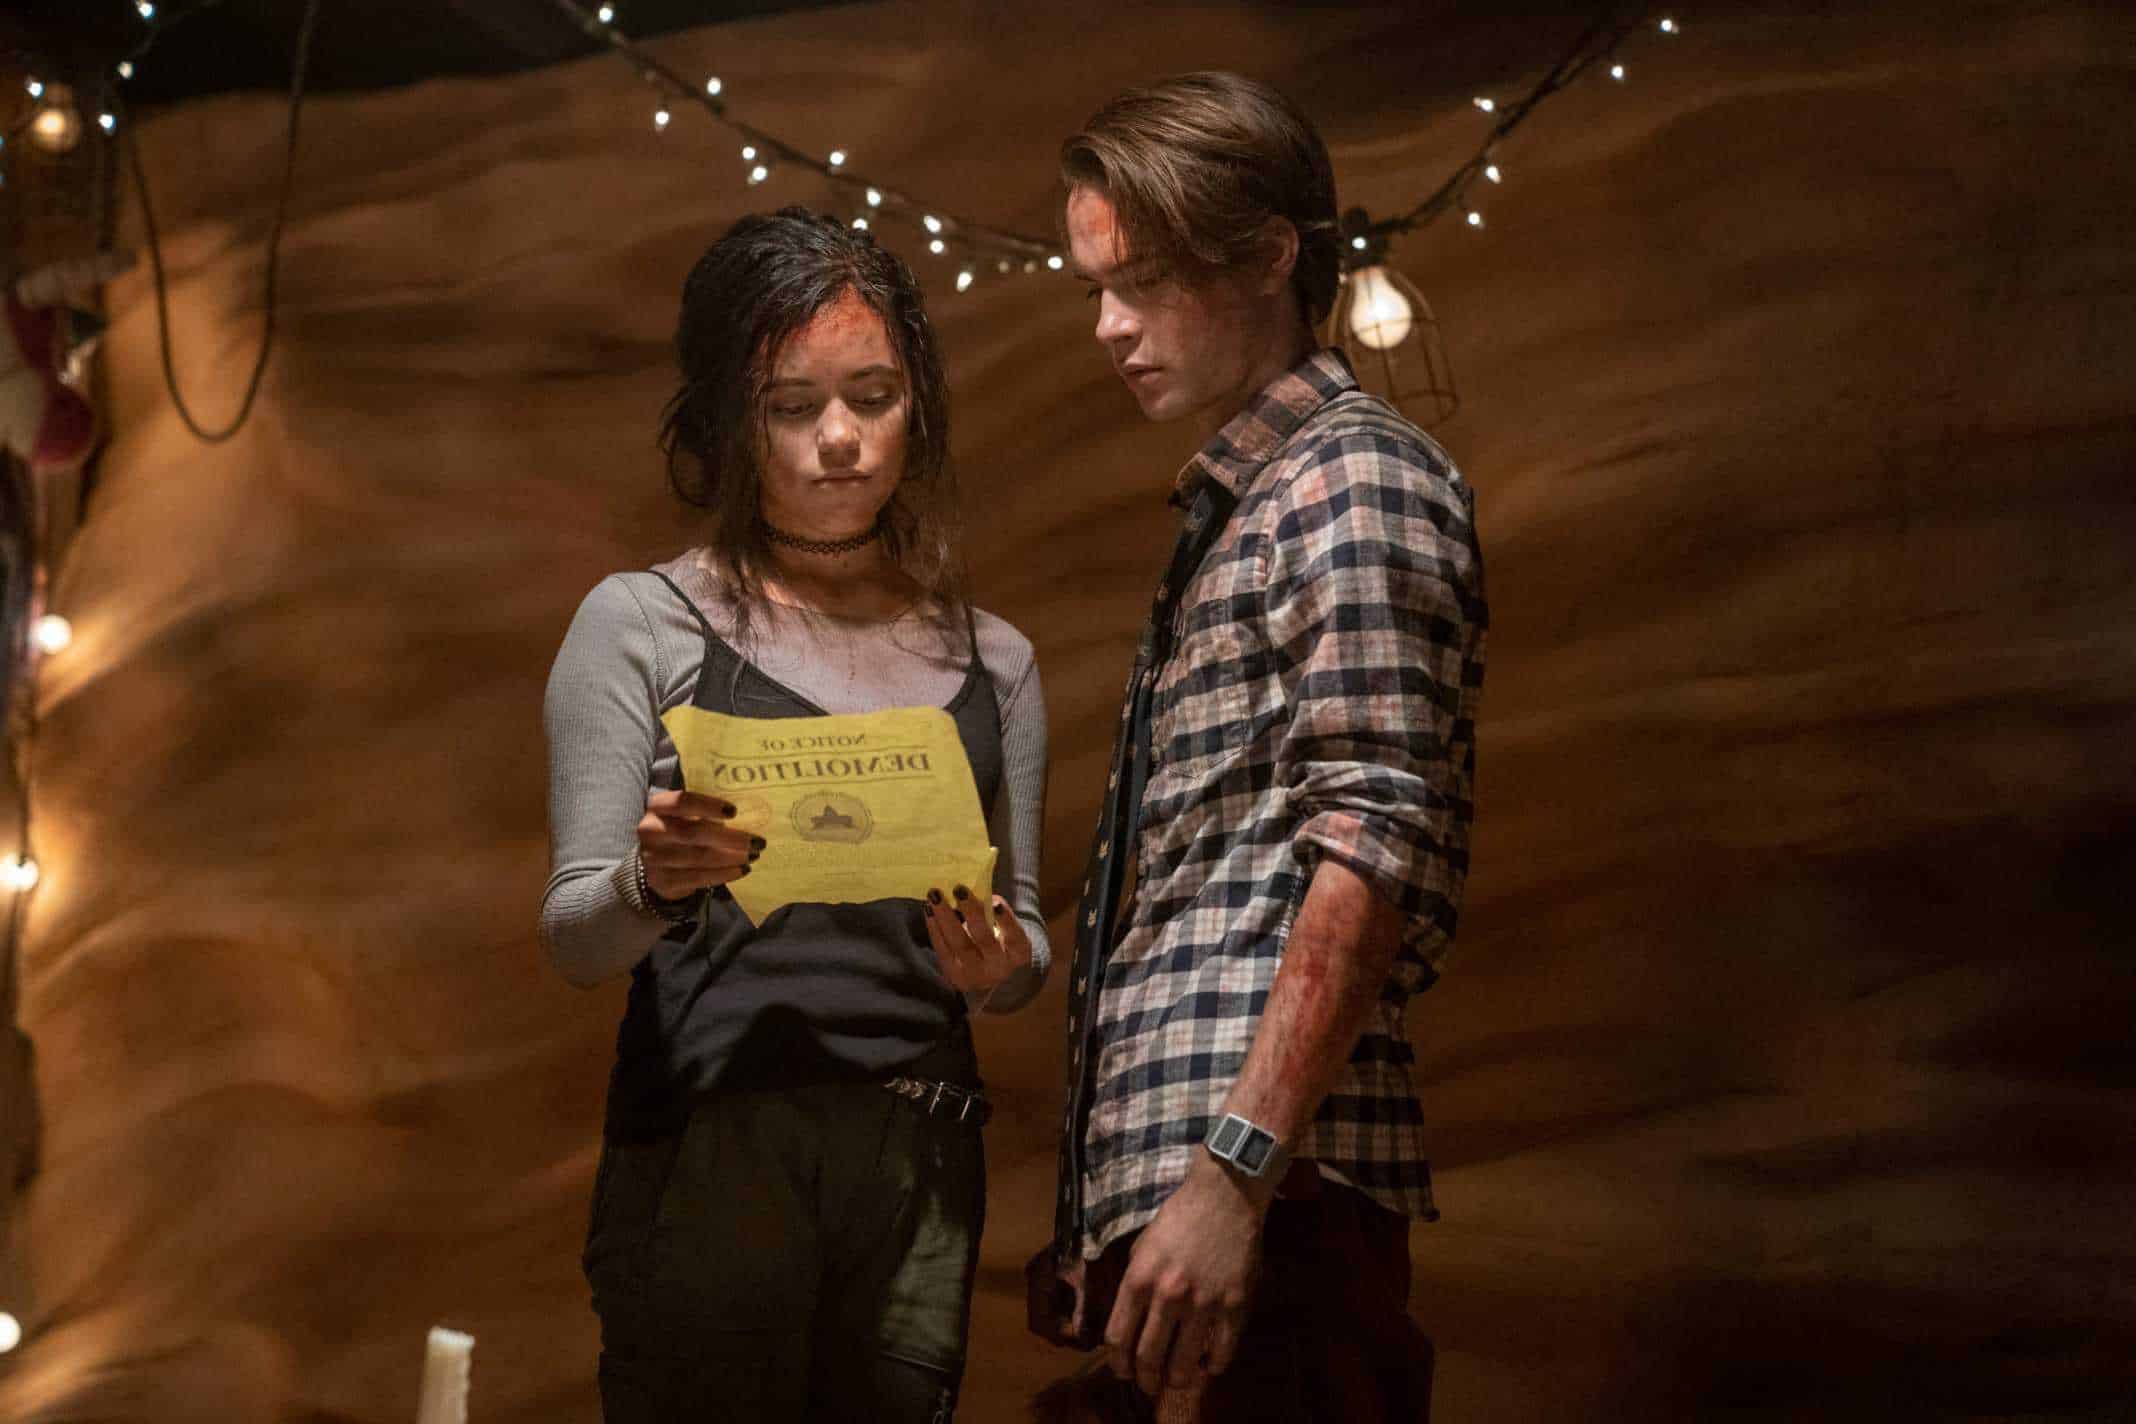 JENNA ORTEGA as PHOEBE and JUDAH LEWIS as COLE looking at a piece of paper, seemingly with blood on them.